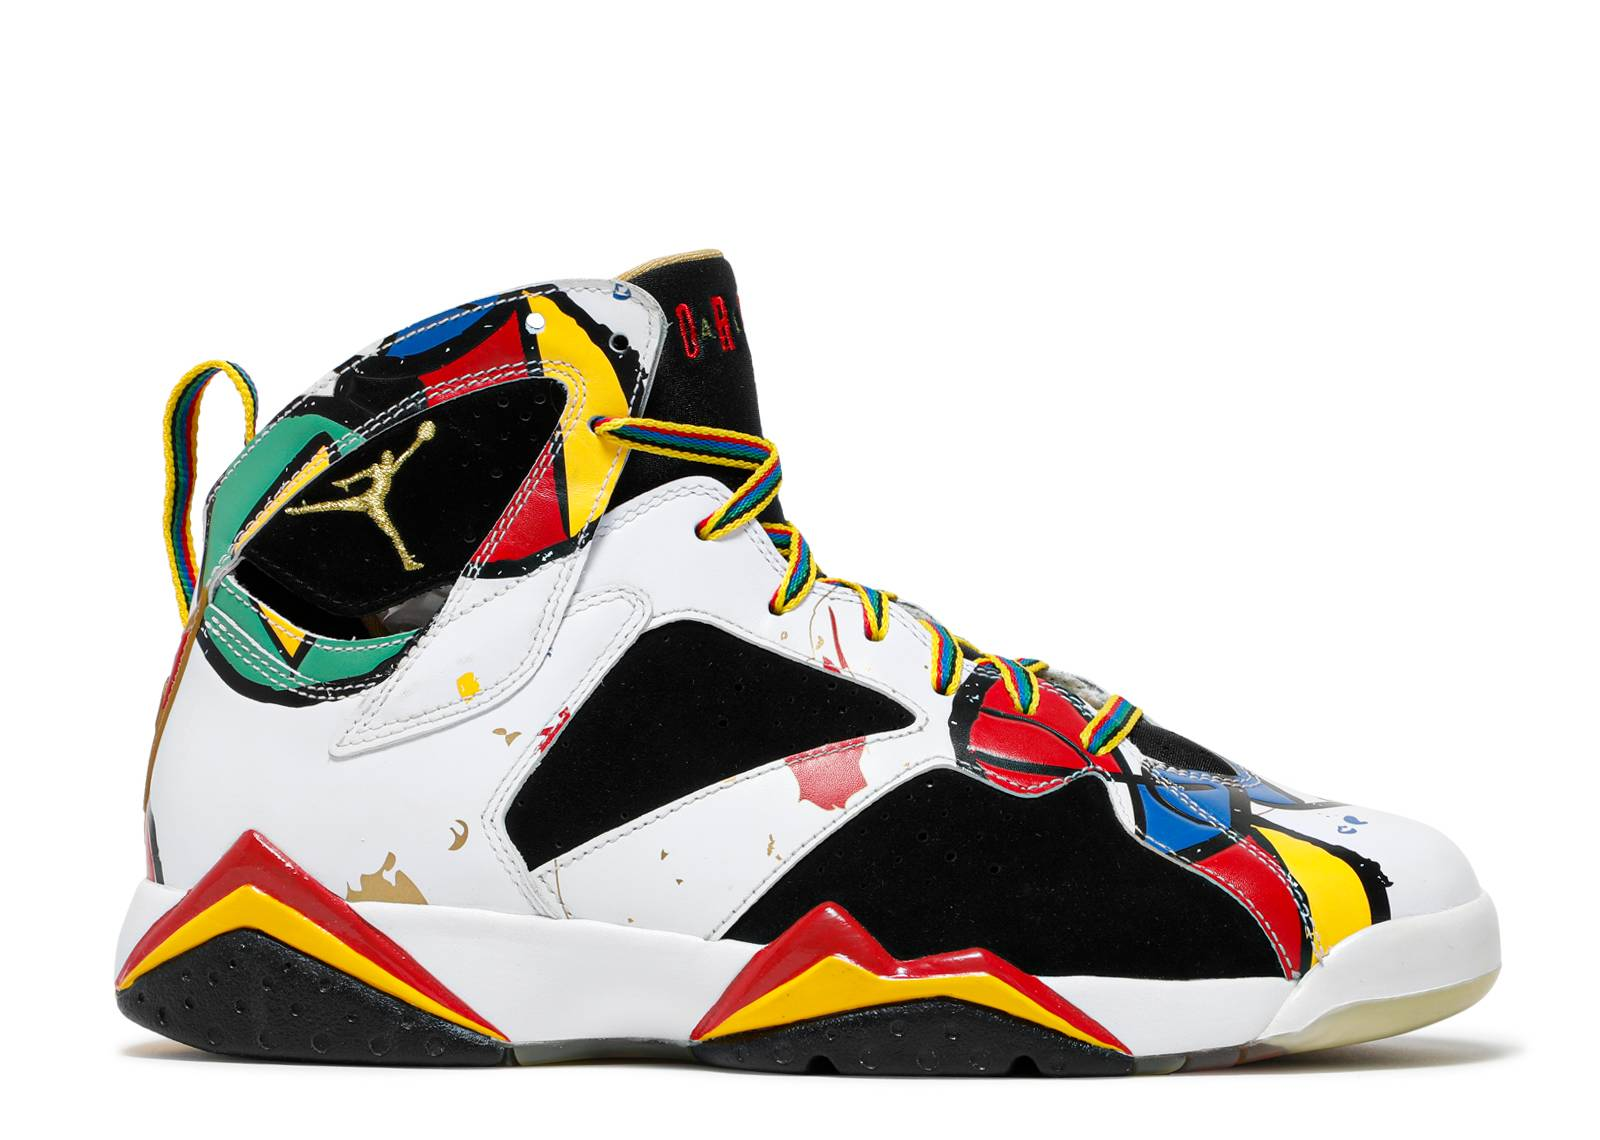 e4866fd24c8021 Air Jordan 7 Retro Oc